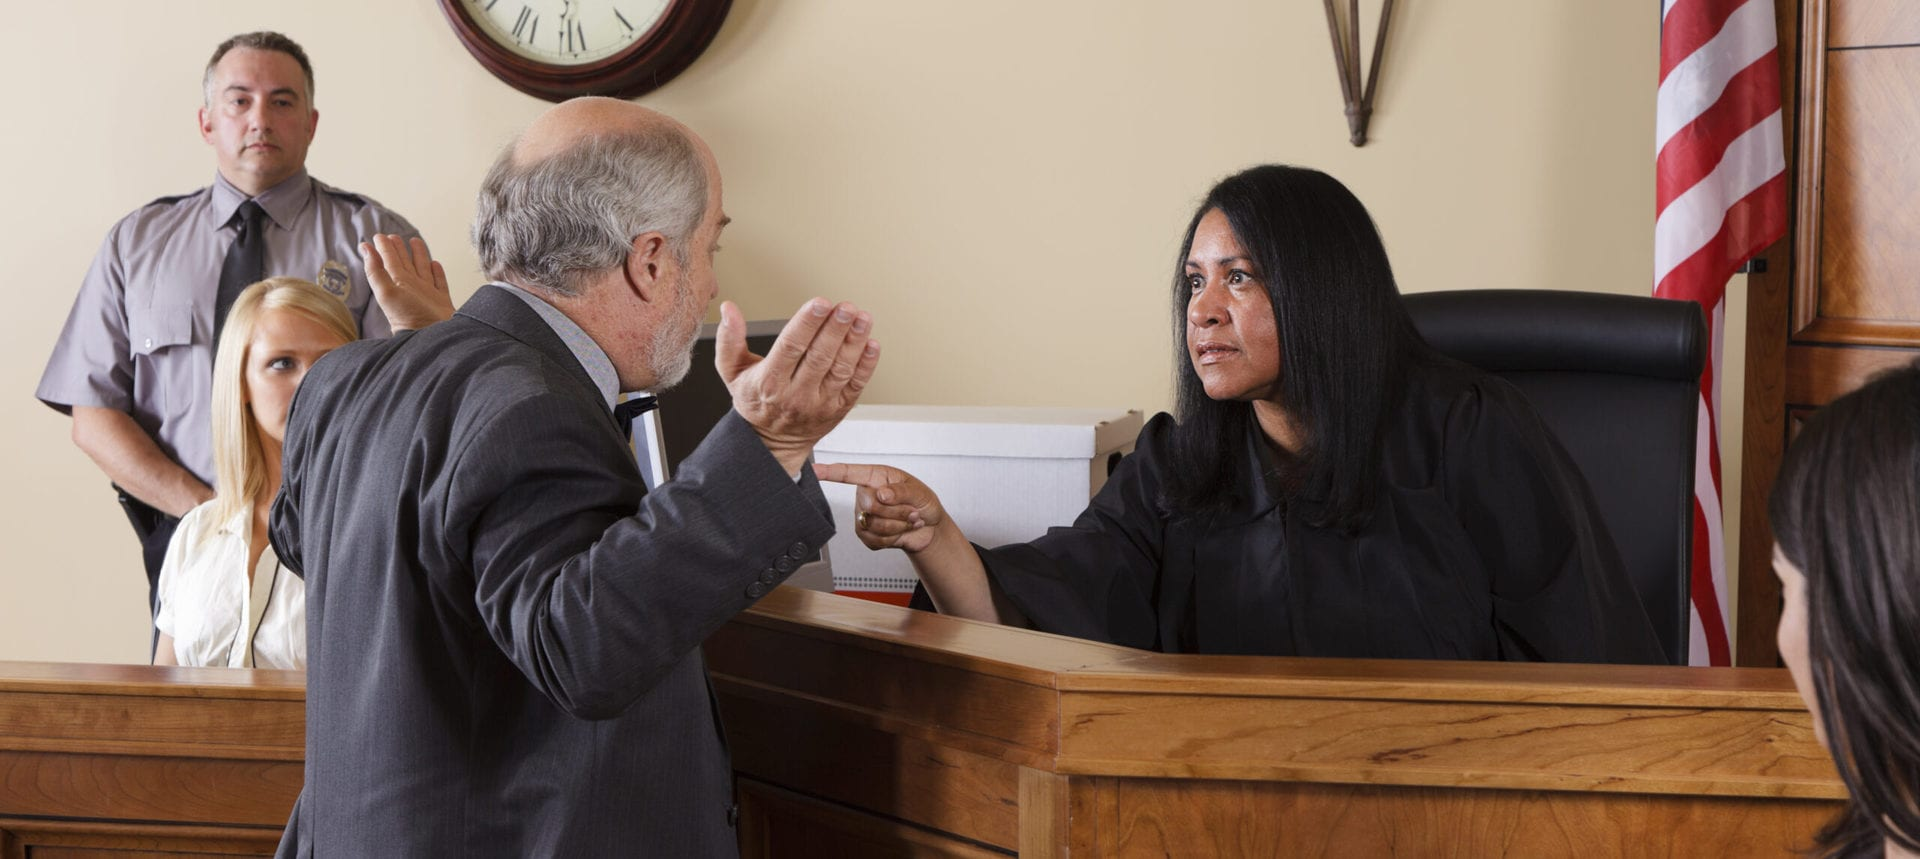 A lawyer talking to the judge in a courtroom.